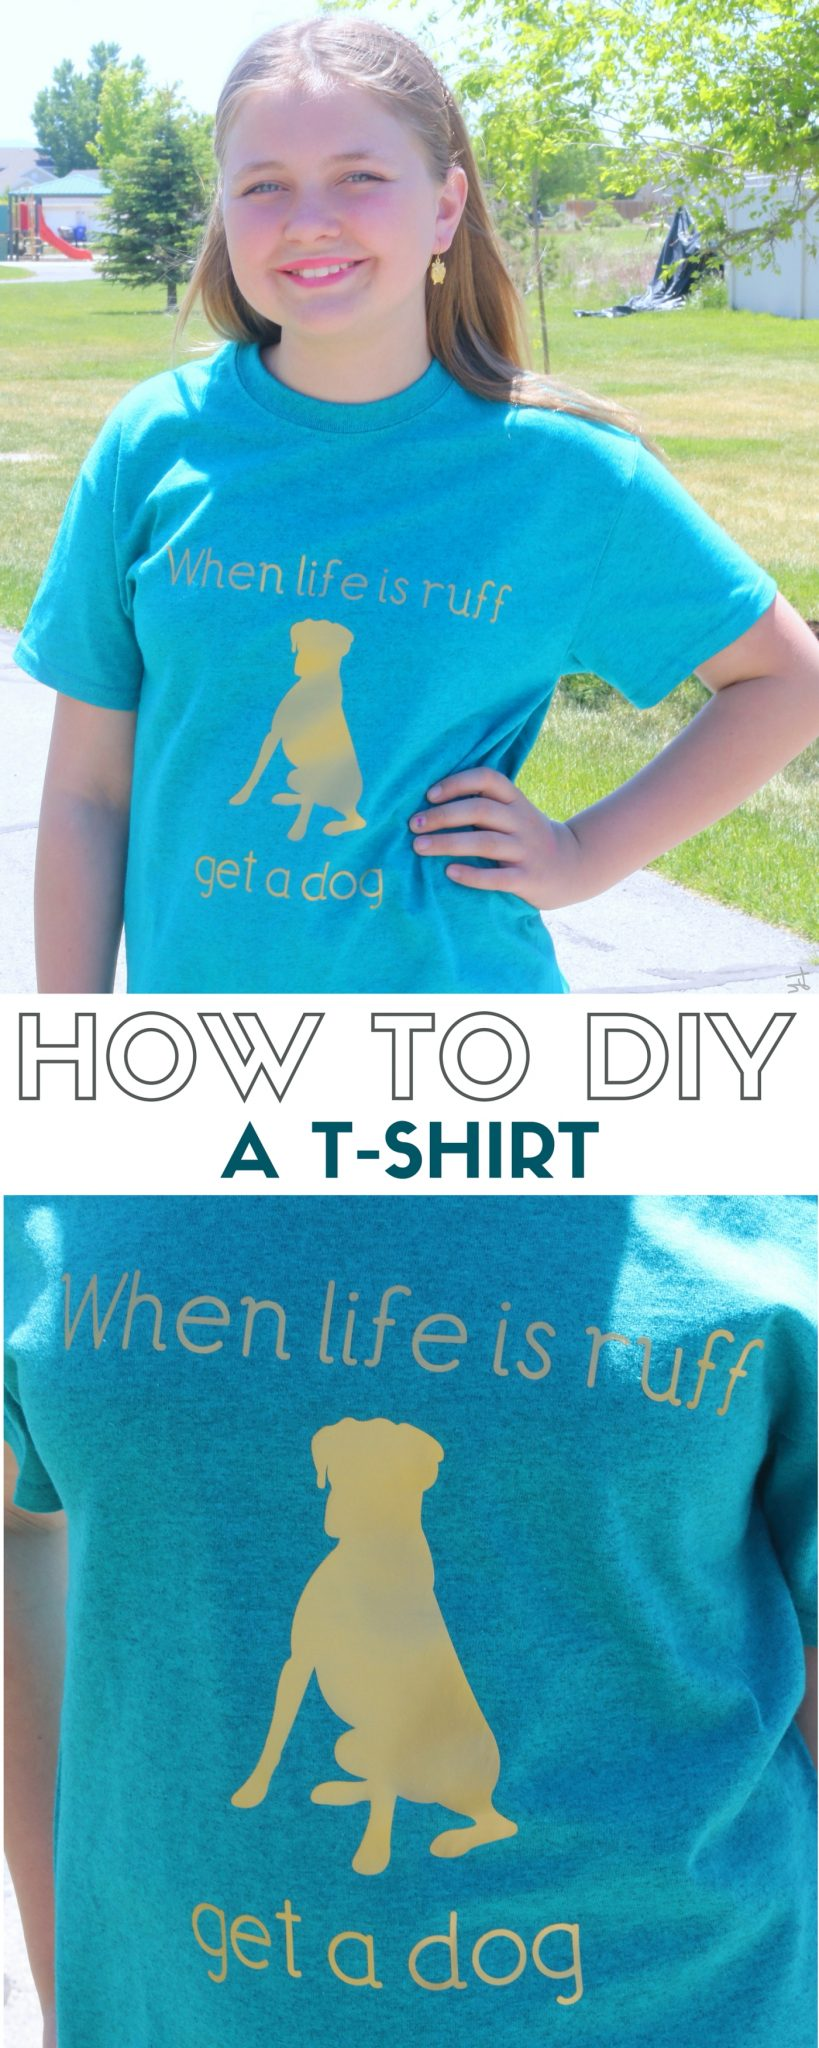 How to diy a t shirt with iron on transfer the crafty for How to copyright at shirt design